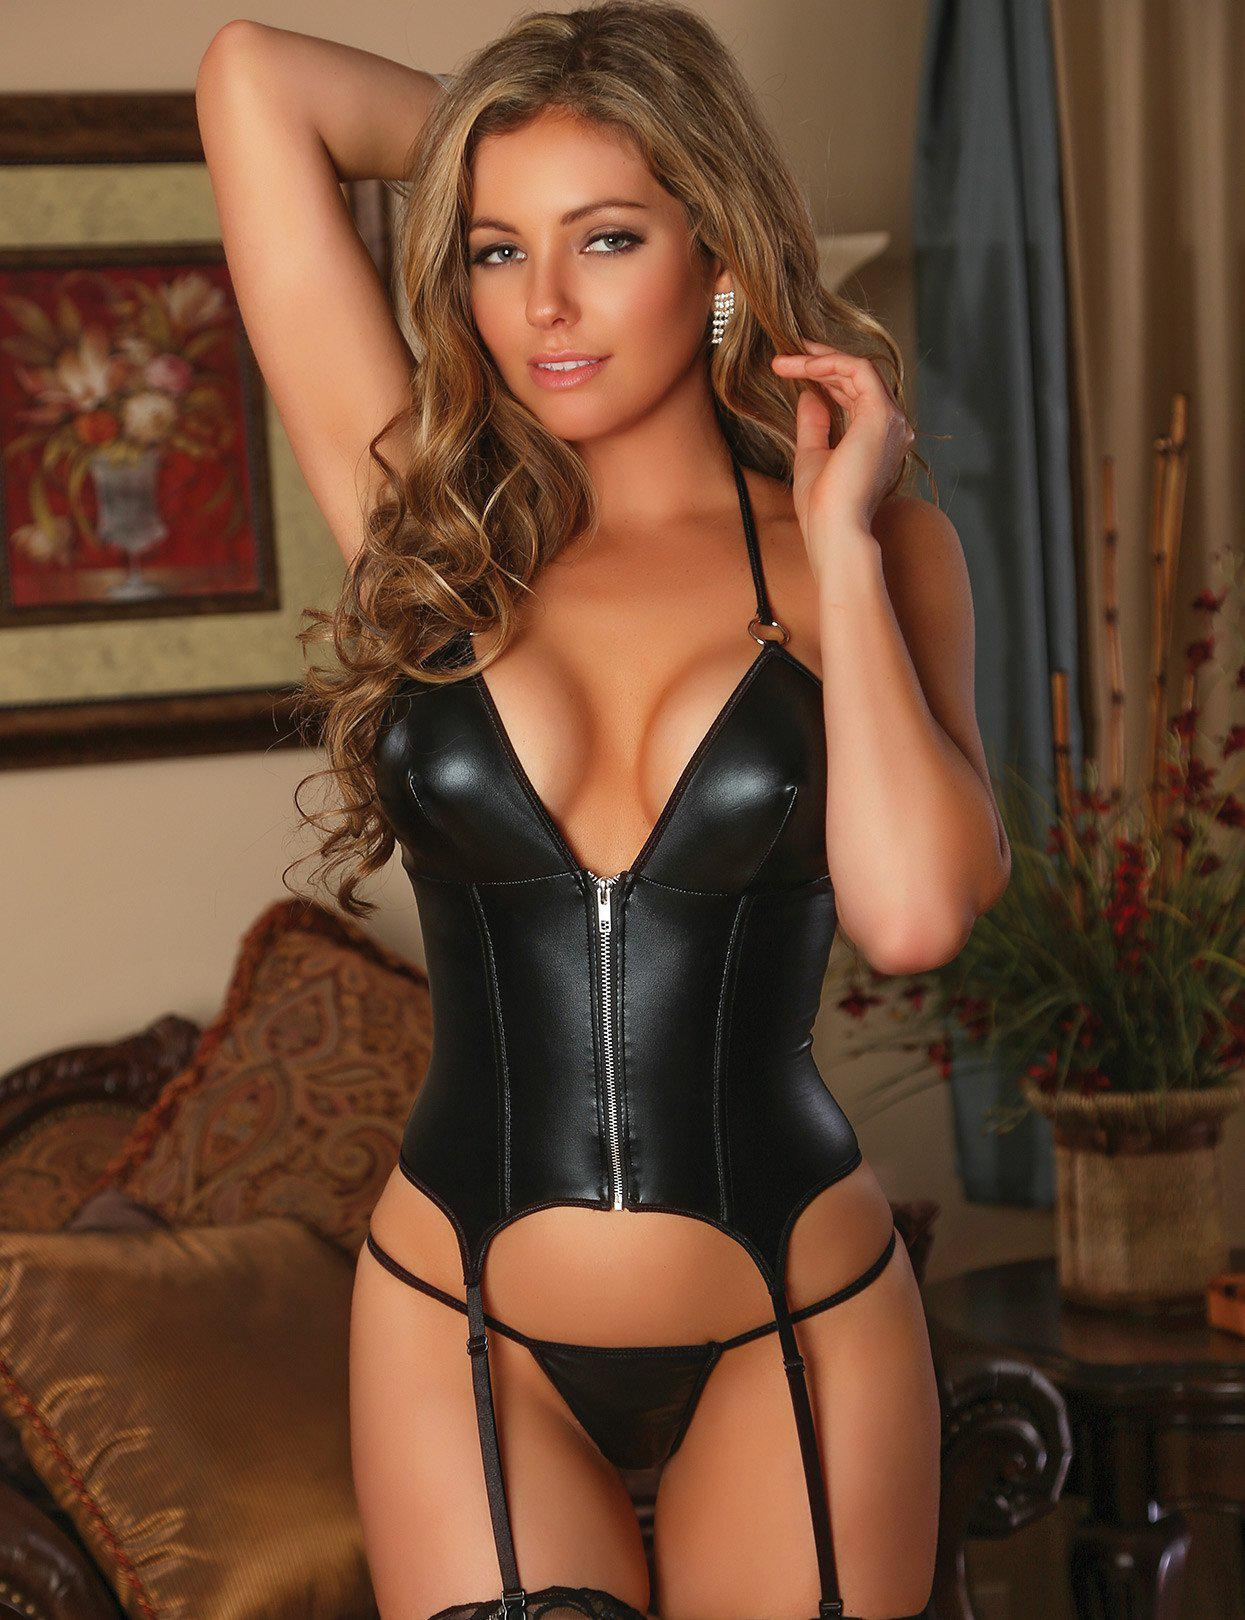 ec074b3a12c Liquid Onyx Zipper Merry Widow Corset and G-string.  47.00 from Just Damn  Sexy